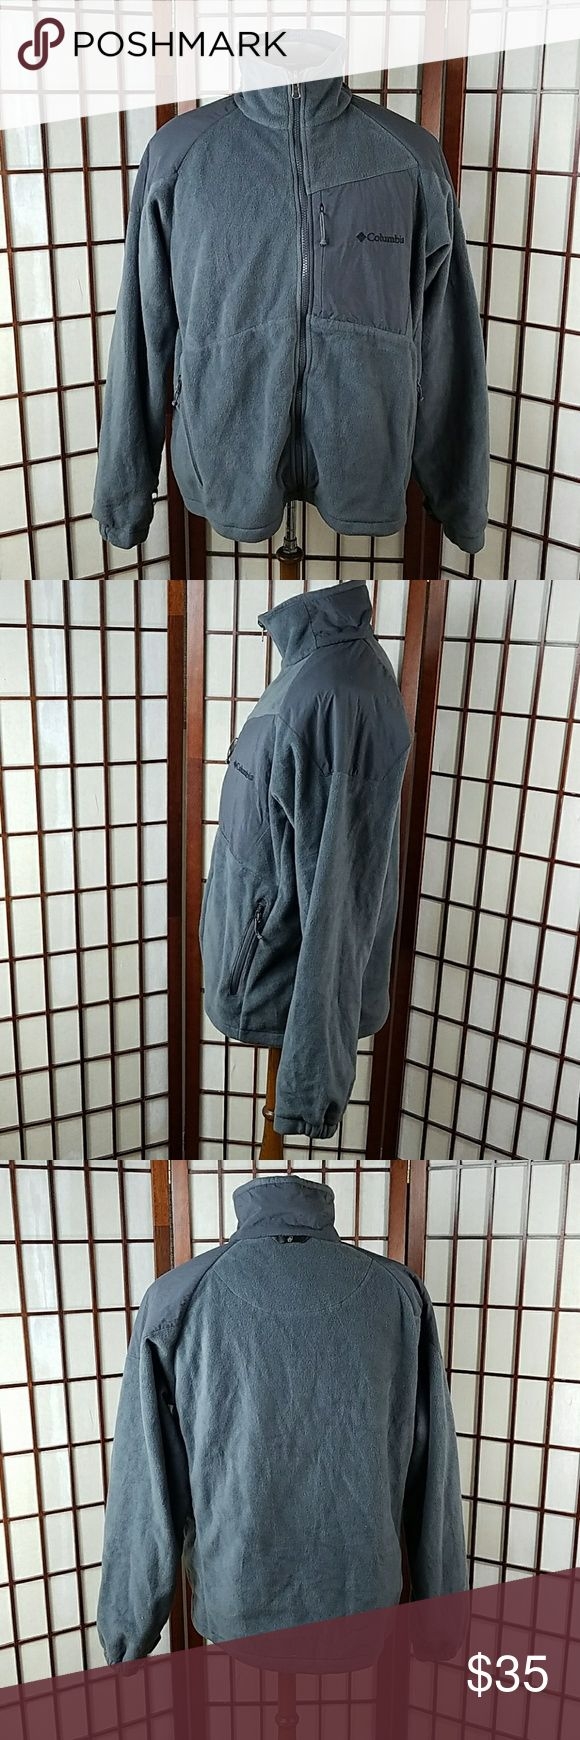 "Columbia Sportswear Company Zip Up Jacket Pre-owned gently worn  COLUMBIA SPORTSWEAR SIZE MEDIUM  Zip Up Jacket Gray Color Solid pattern  Has 3 zip pockets  Made of 100% polyester    Measurement Approximate Pit to pit 24""  Shoulder to hem 27""  #2 Columbia Jackets & Coats"